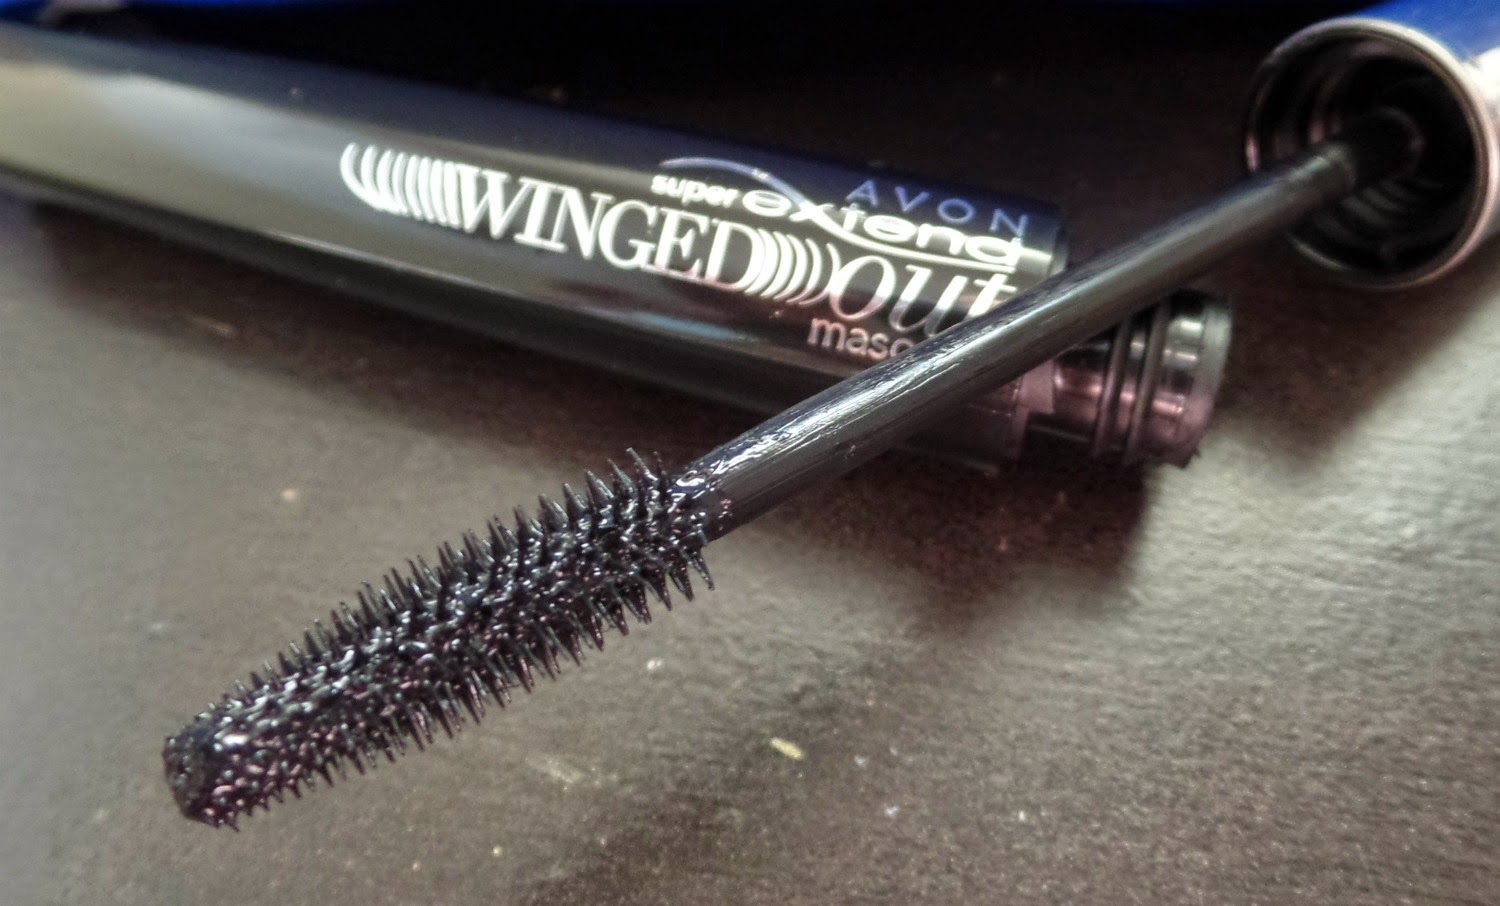 aa28abe7d78 It didn't give me too much volume but it is super lengthening, and that's  the way I like my mascaras! The Avon Super Extend Winged Out ...